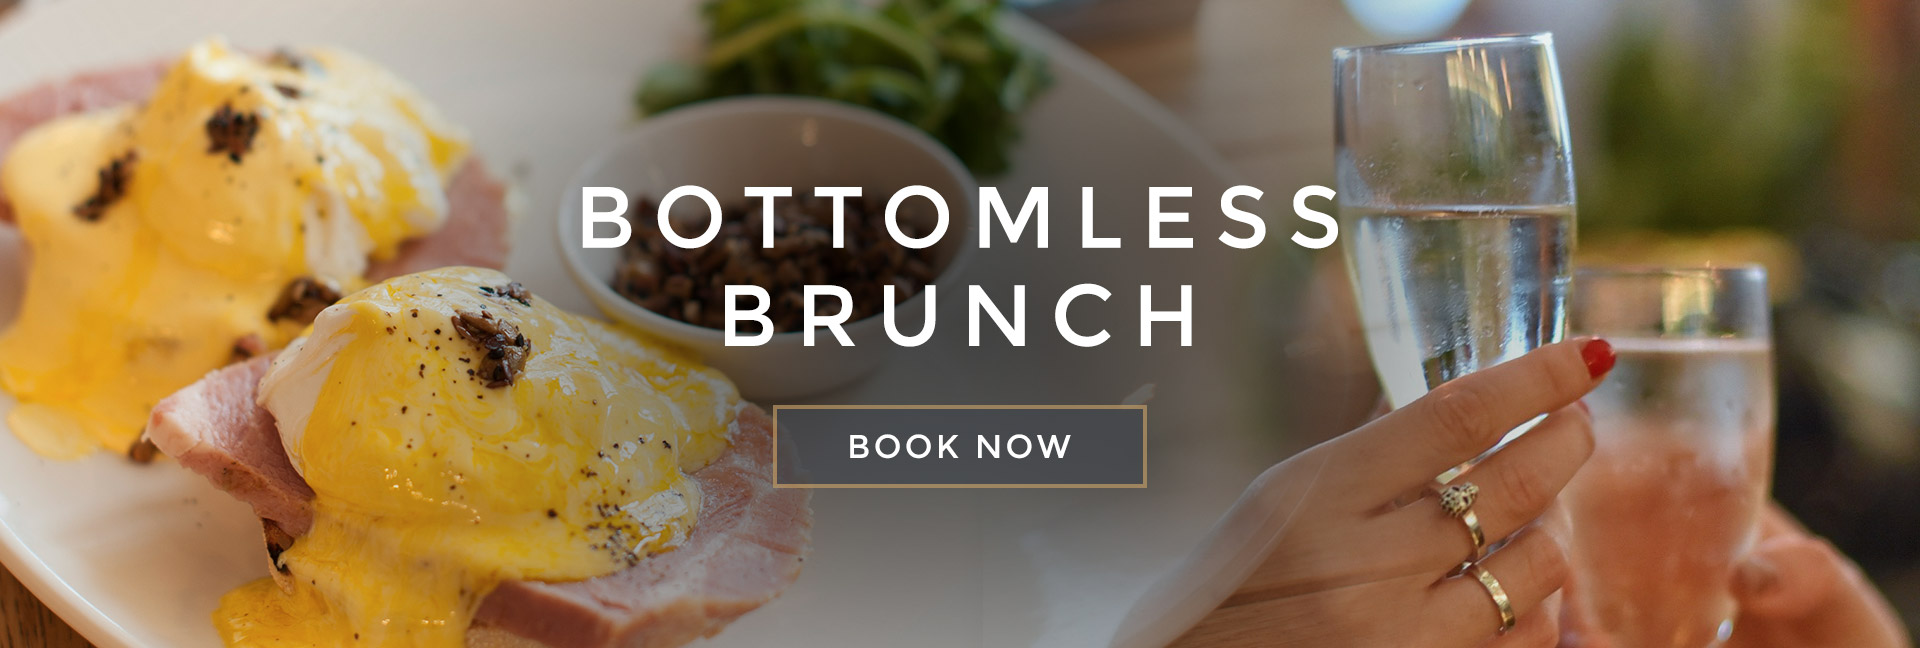 Bottomless Brunch at All Bar One Trafford Centre - Book now